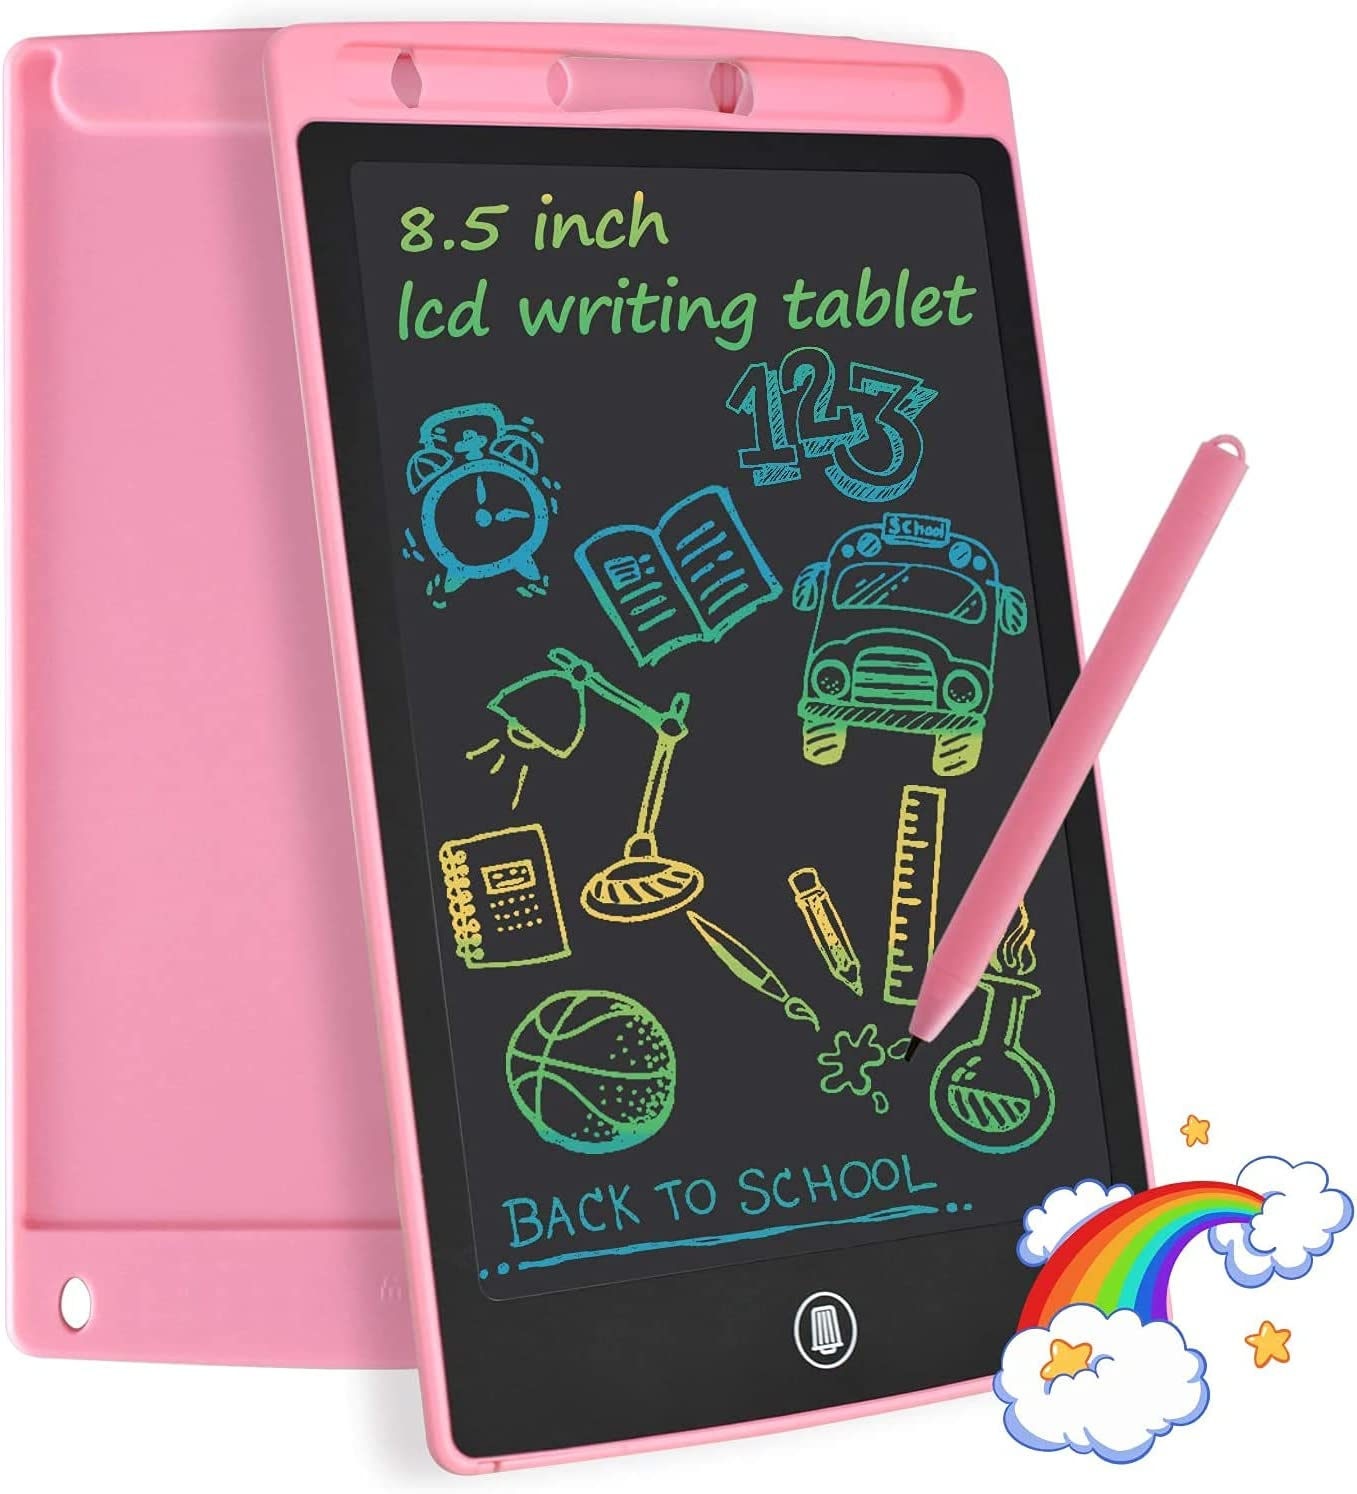 YOUNGRAYS 8.5Inch LCD Writing Tablet, LCD Drawing Board Doodle Board Handwriting Board for Kids(Pink)